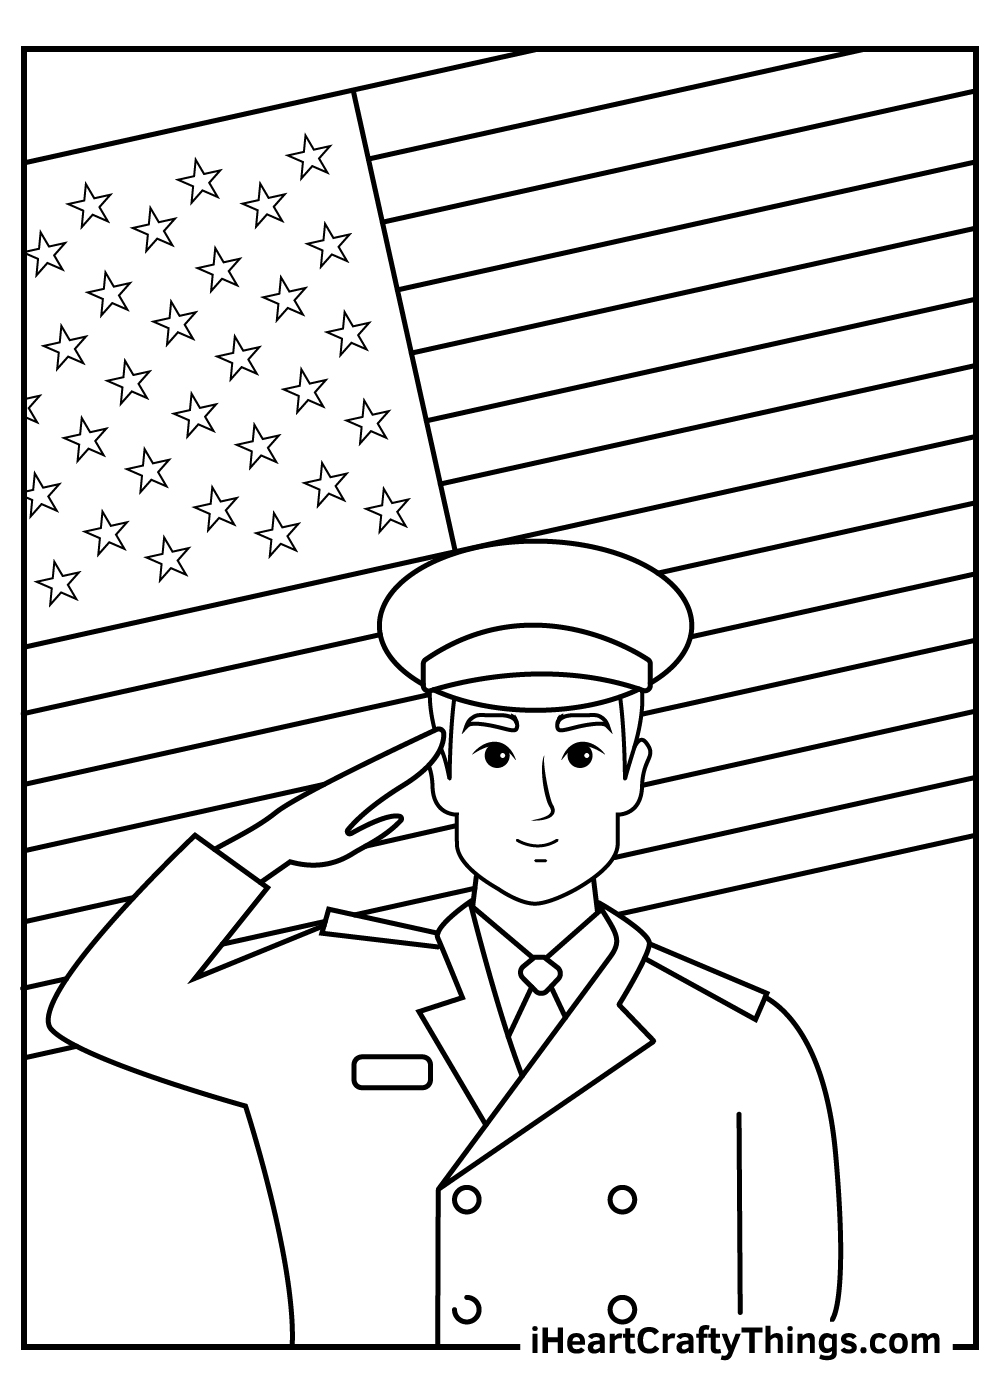 Veteran's Day Coloring Pages free download